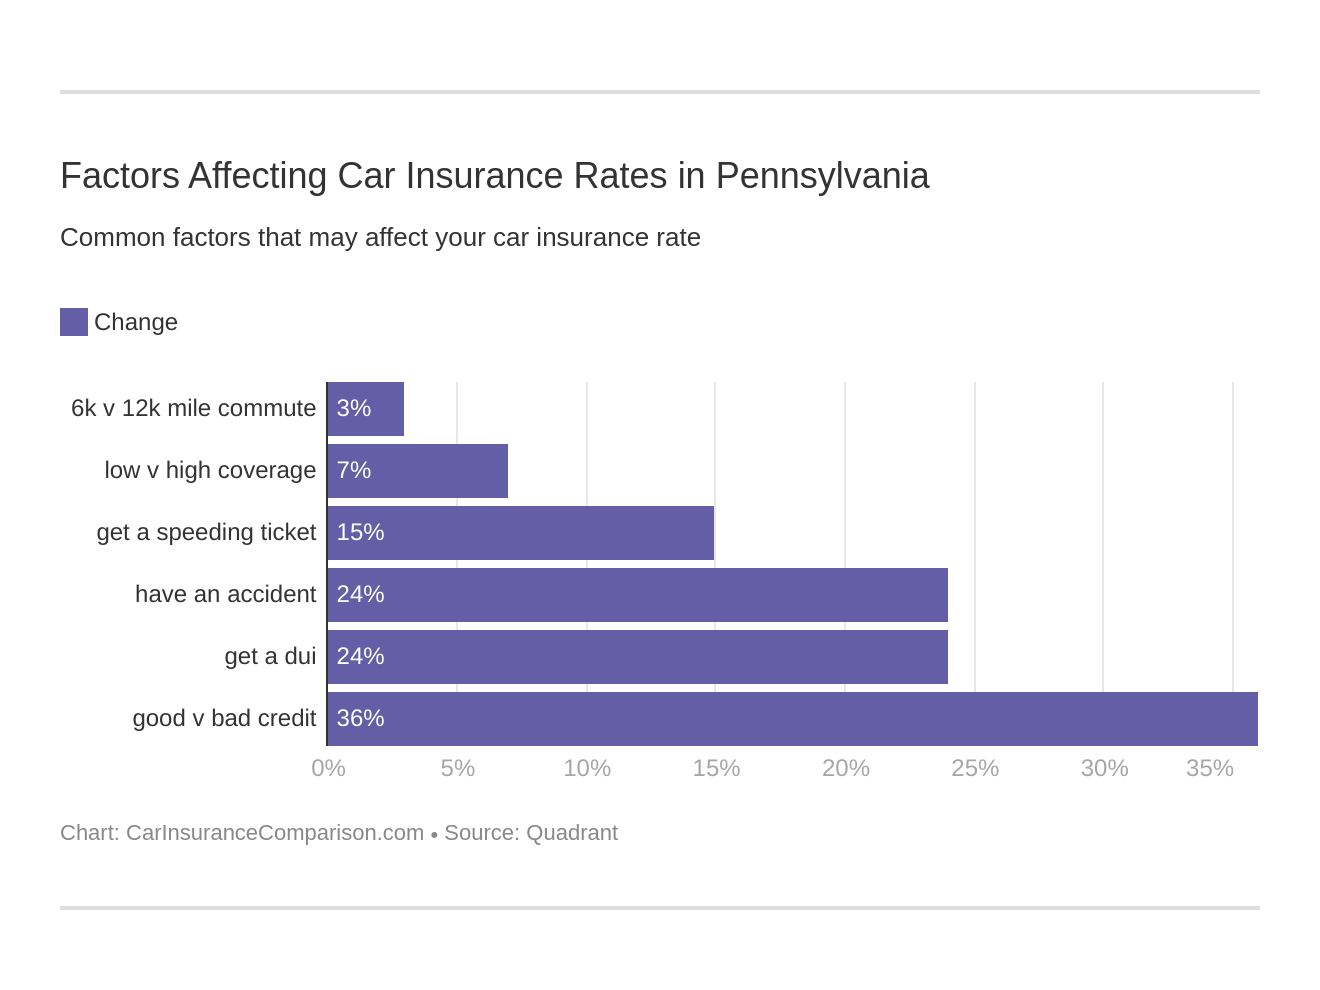 Factors Affecting Car Insurance Rates in Pennsylvania